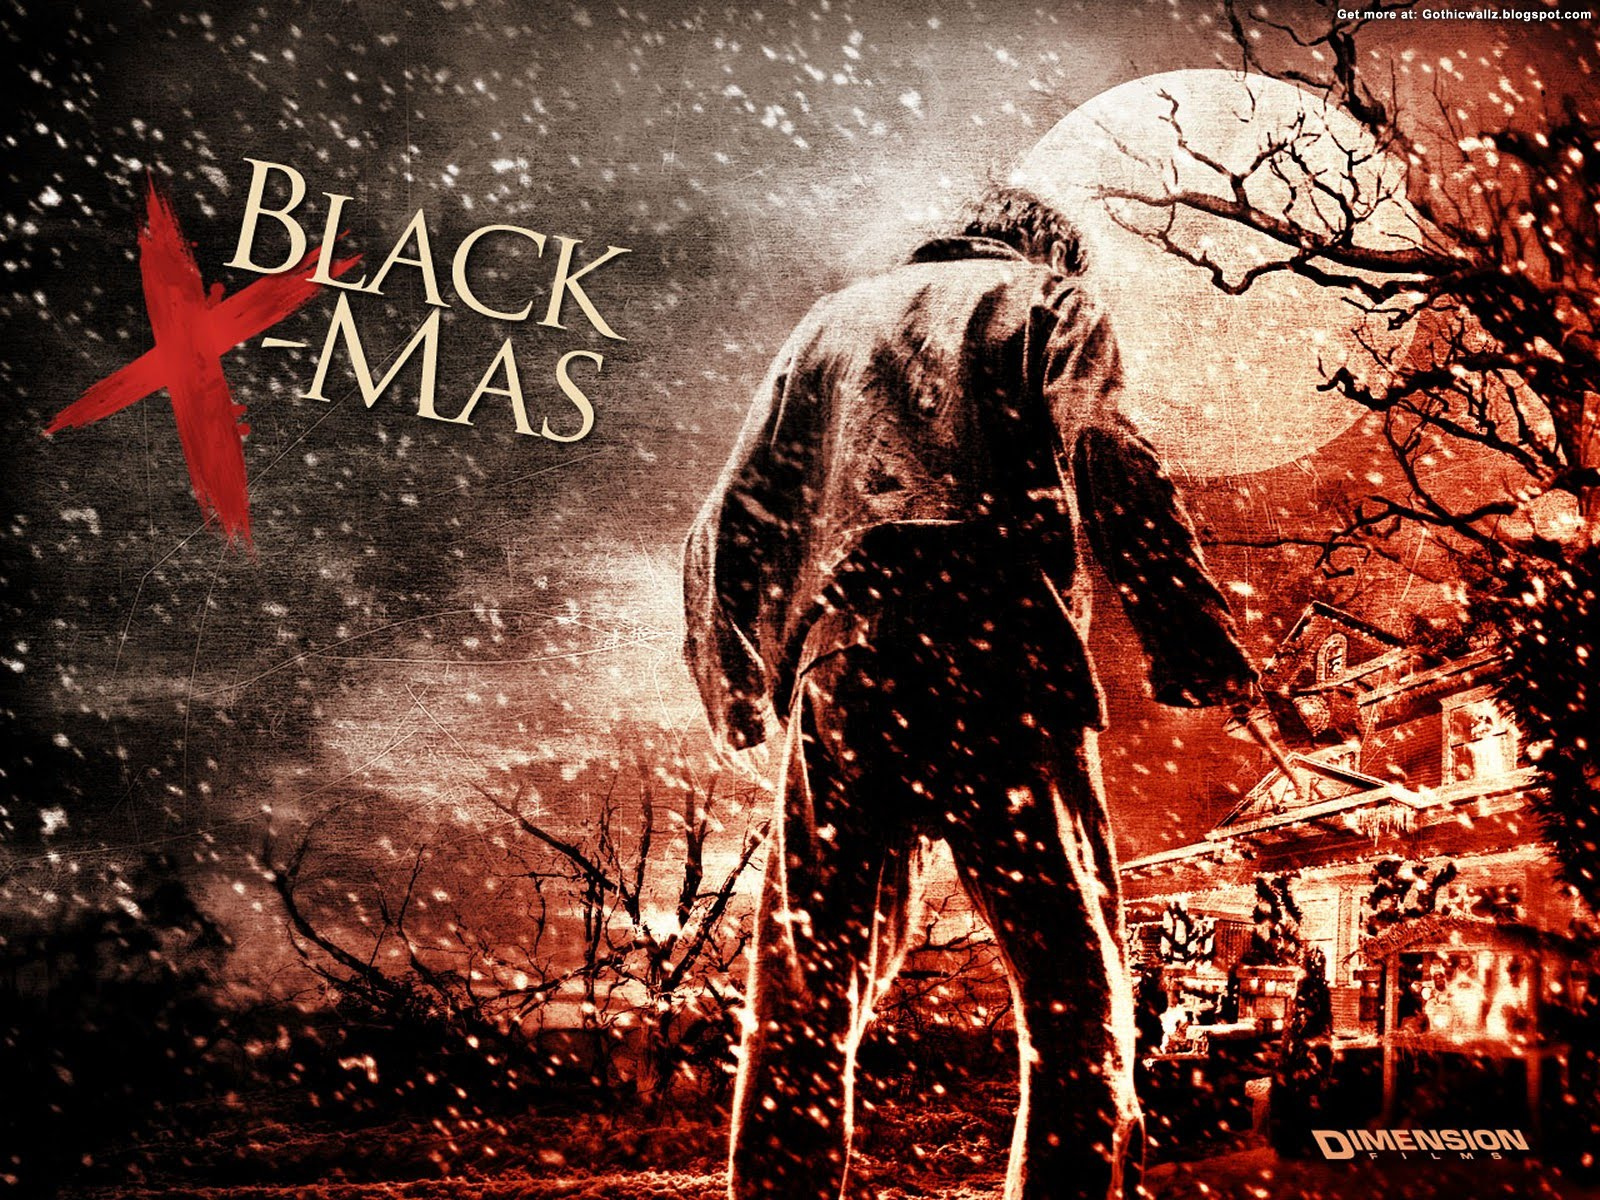 Black Christmas Wallpaper 5 | Gothic Wallpaper Download